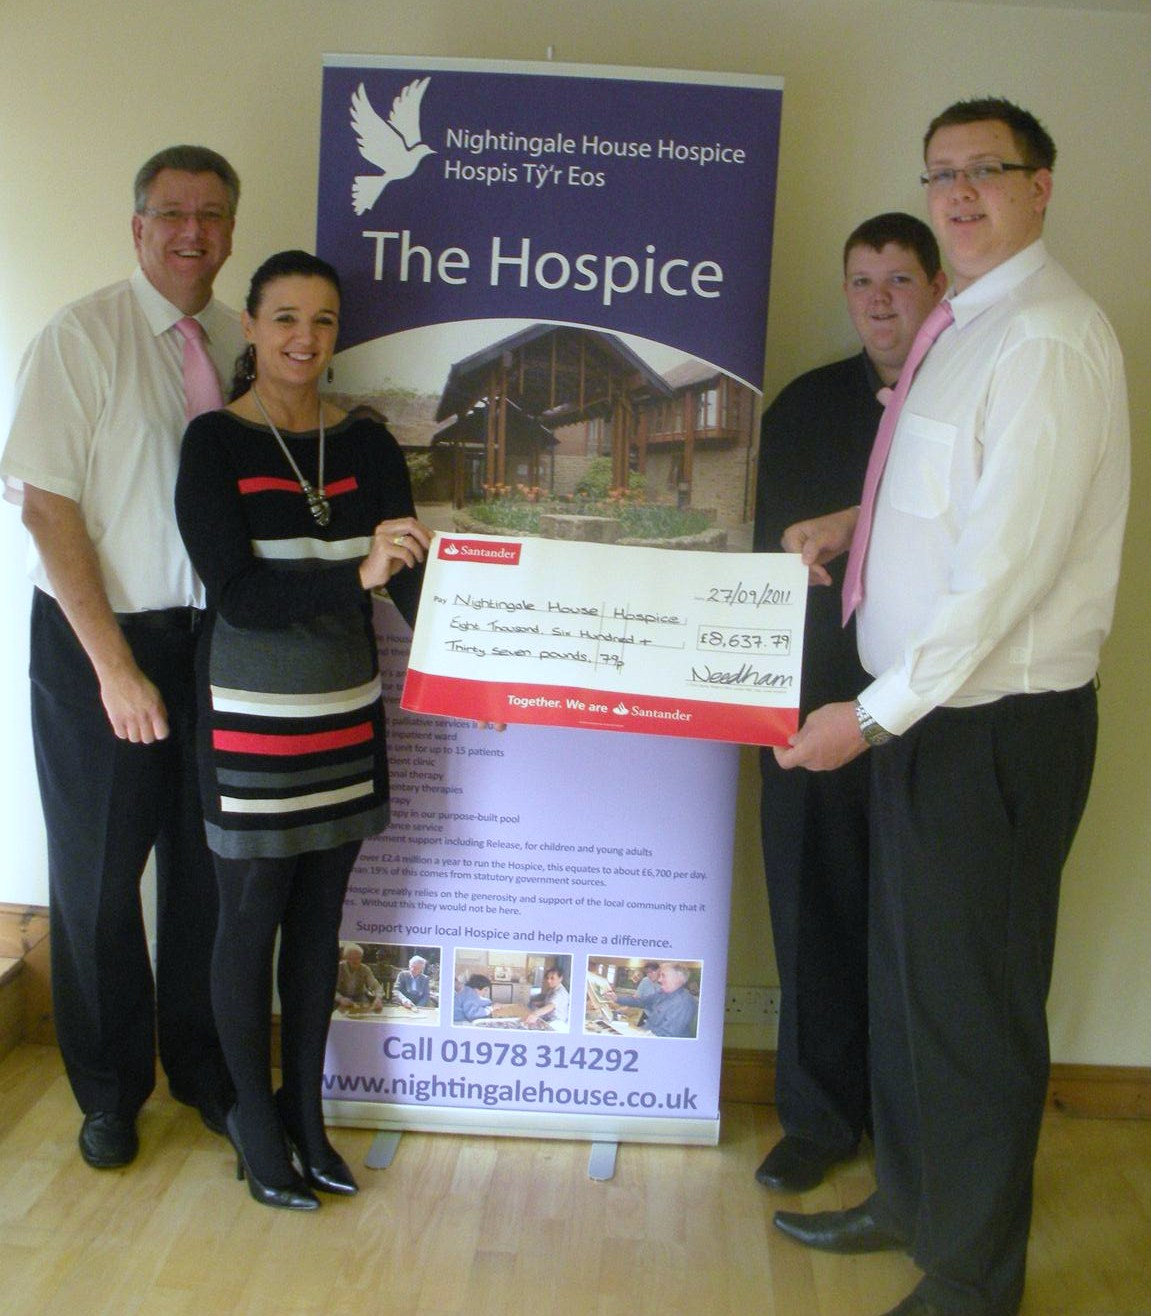 The Needham family present a cheque for £8,638 to Rachael Jones, Corporate Fundraiser at Nightingale House Hospice.